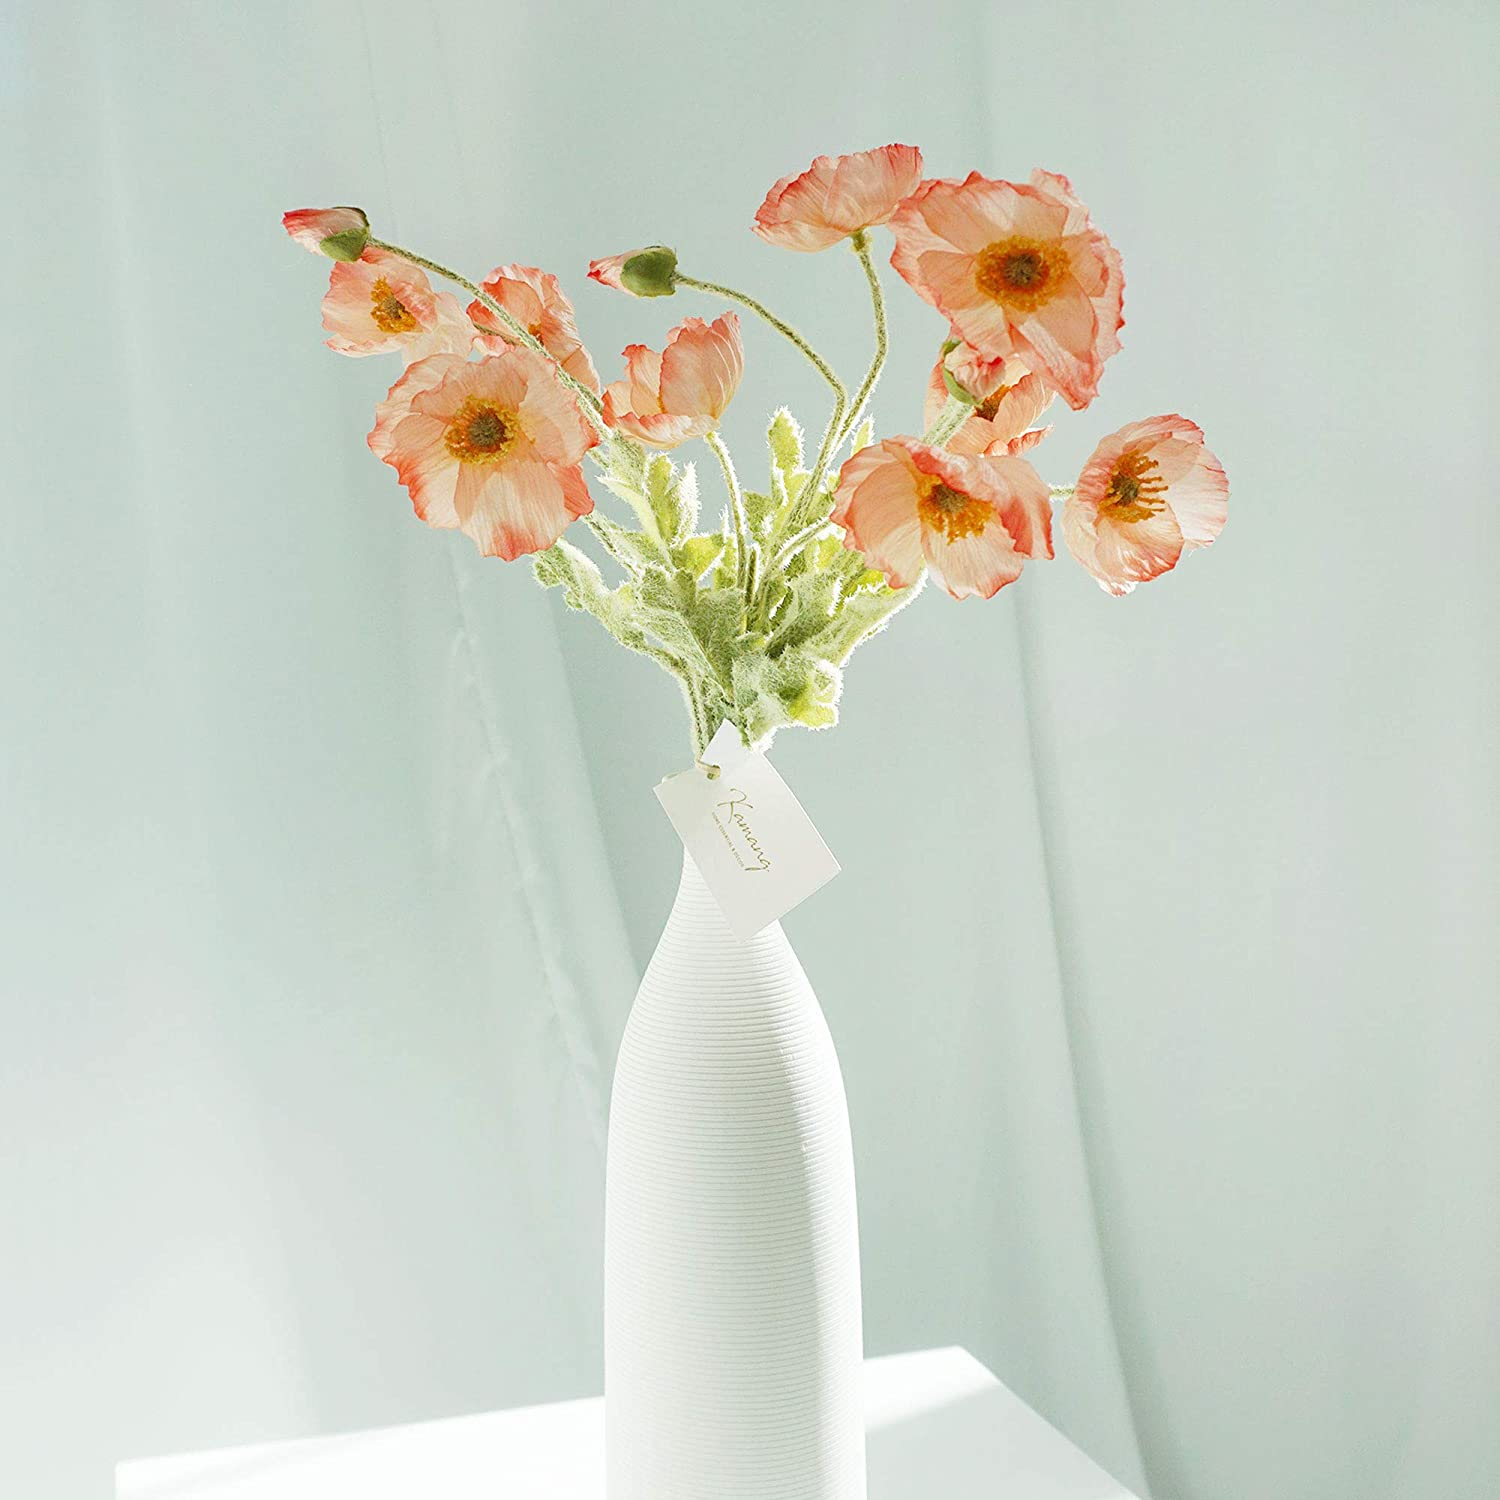 Kamang Realistic Poppy Silk Flower (9pcs/3sets) for Wedding Decoration, Home/Party Decor. Artificial Real Touch Poppy Flower with Aesthetic Color, Decorative Faux Flower Poppies (Coral Gradient)